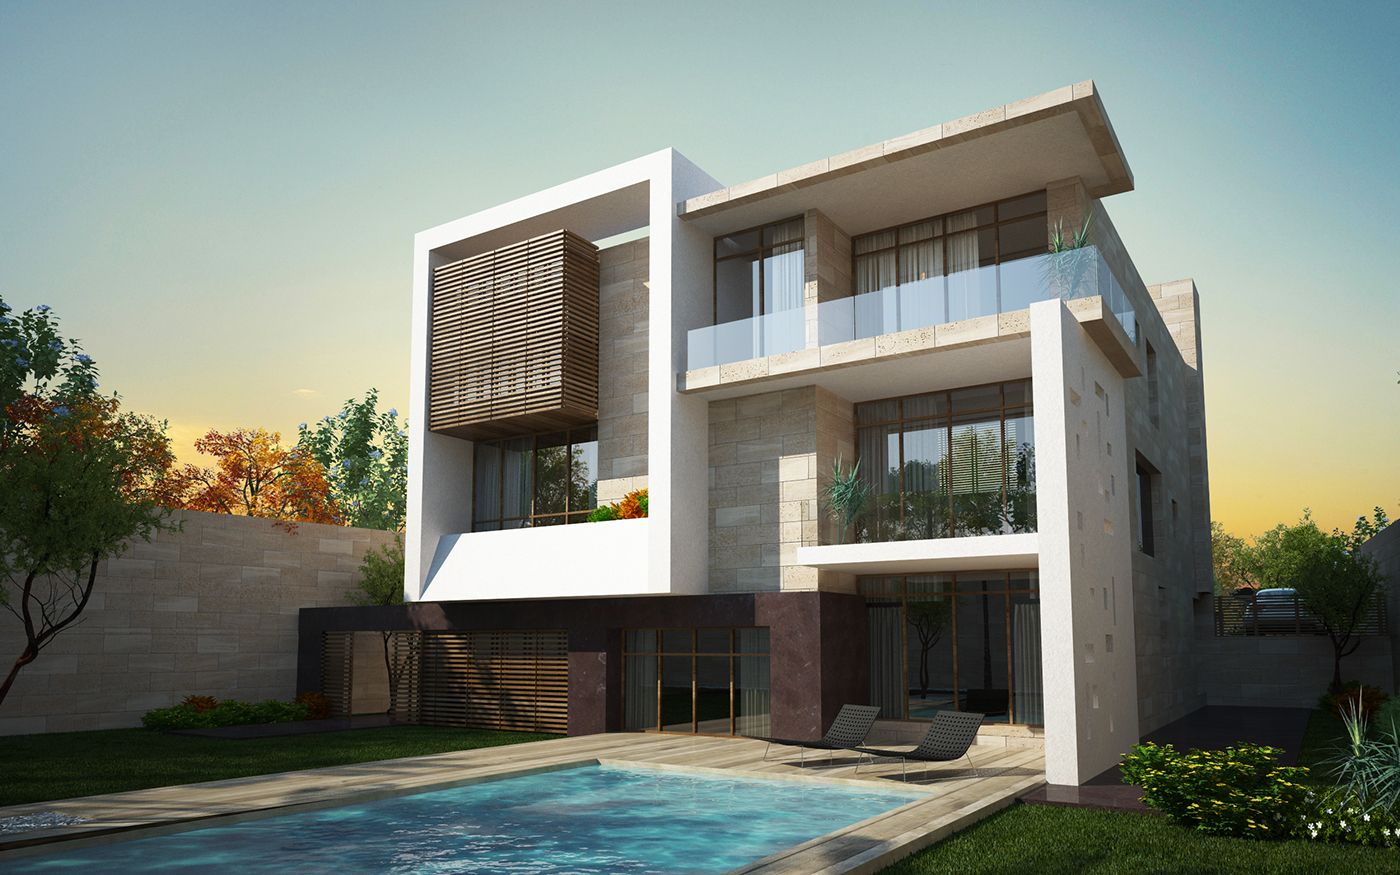 Top 10 houses of this week 27062015 architecture design for Free home architecture design